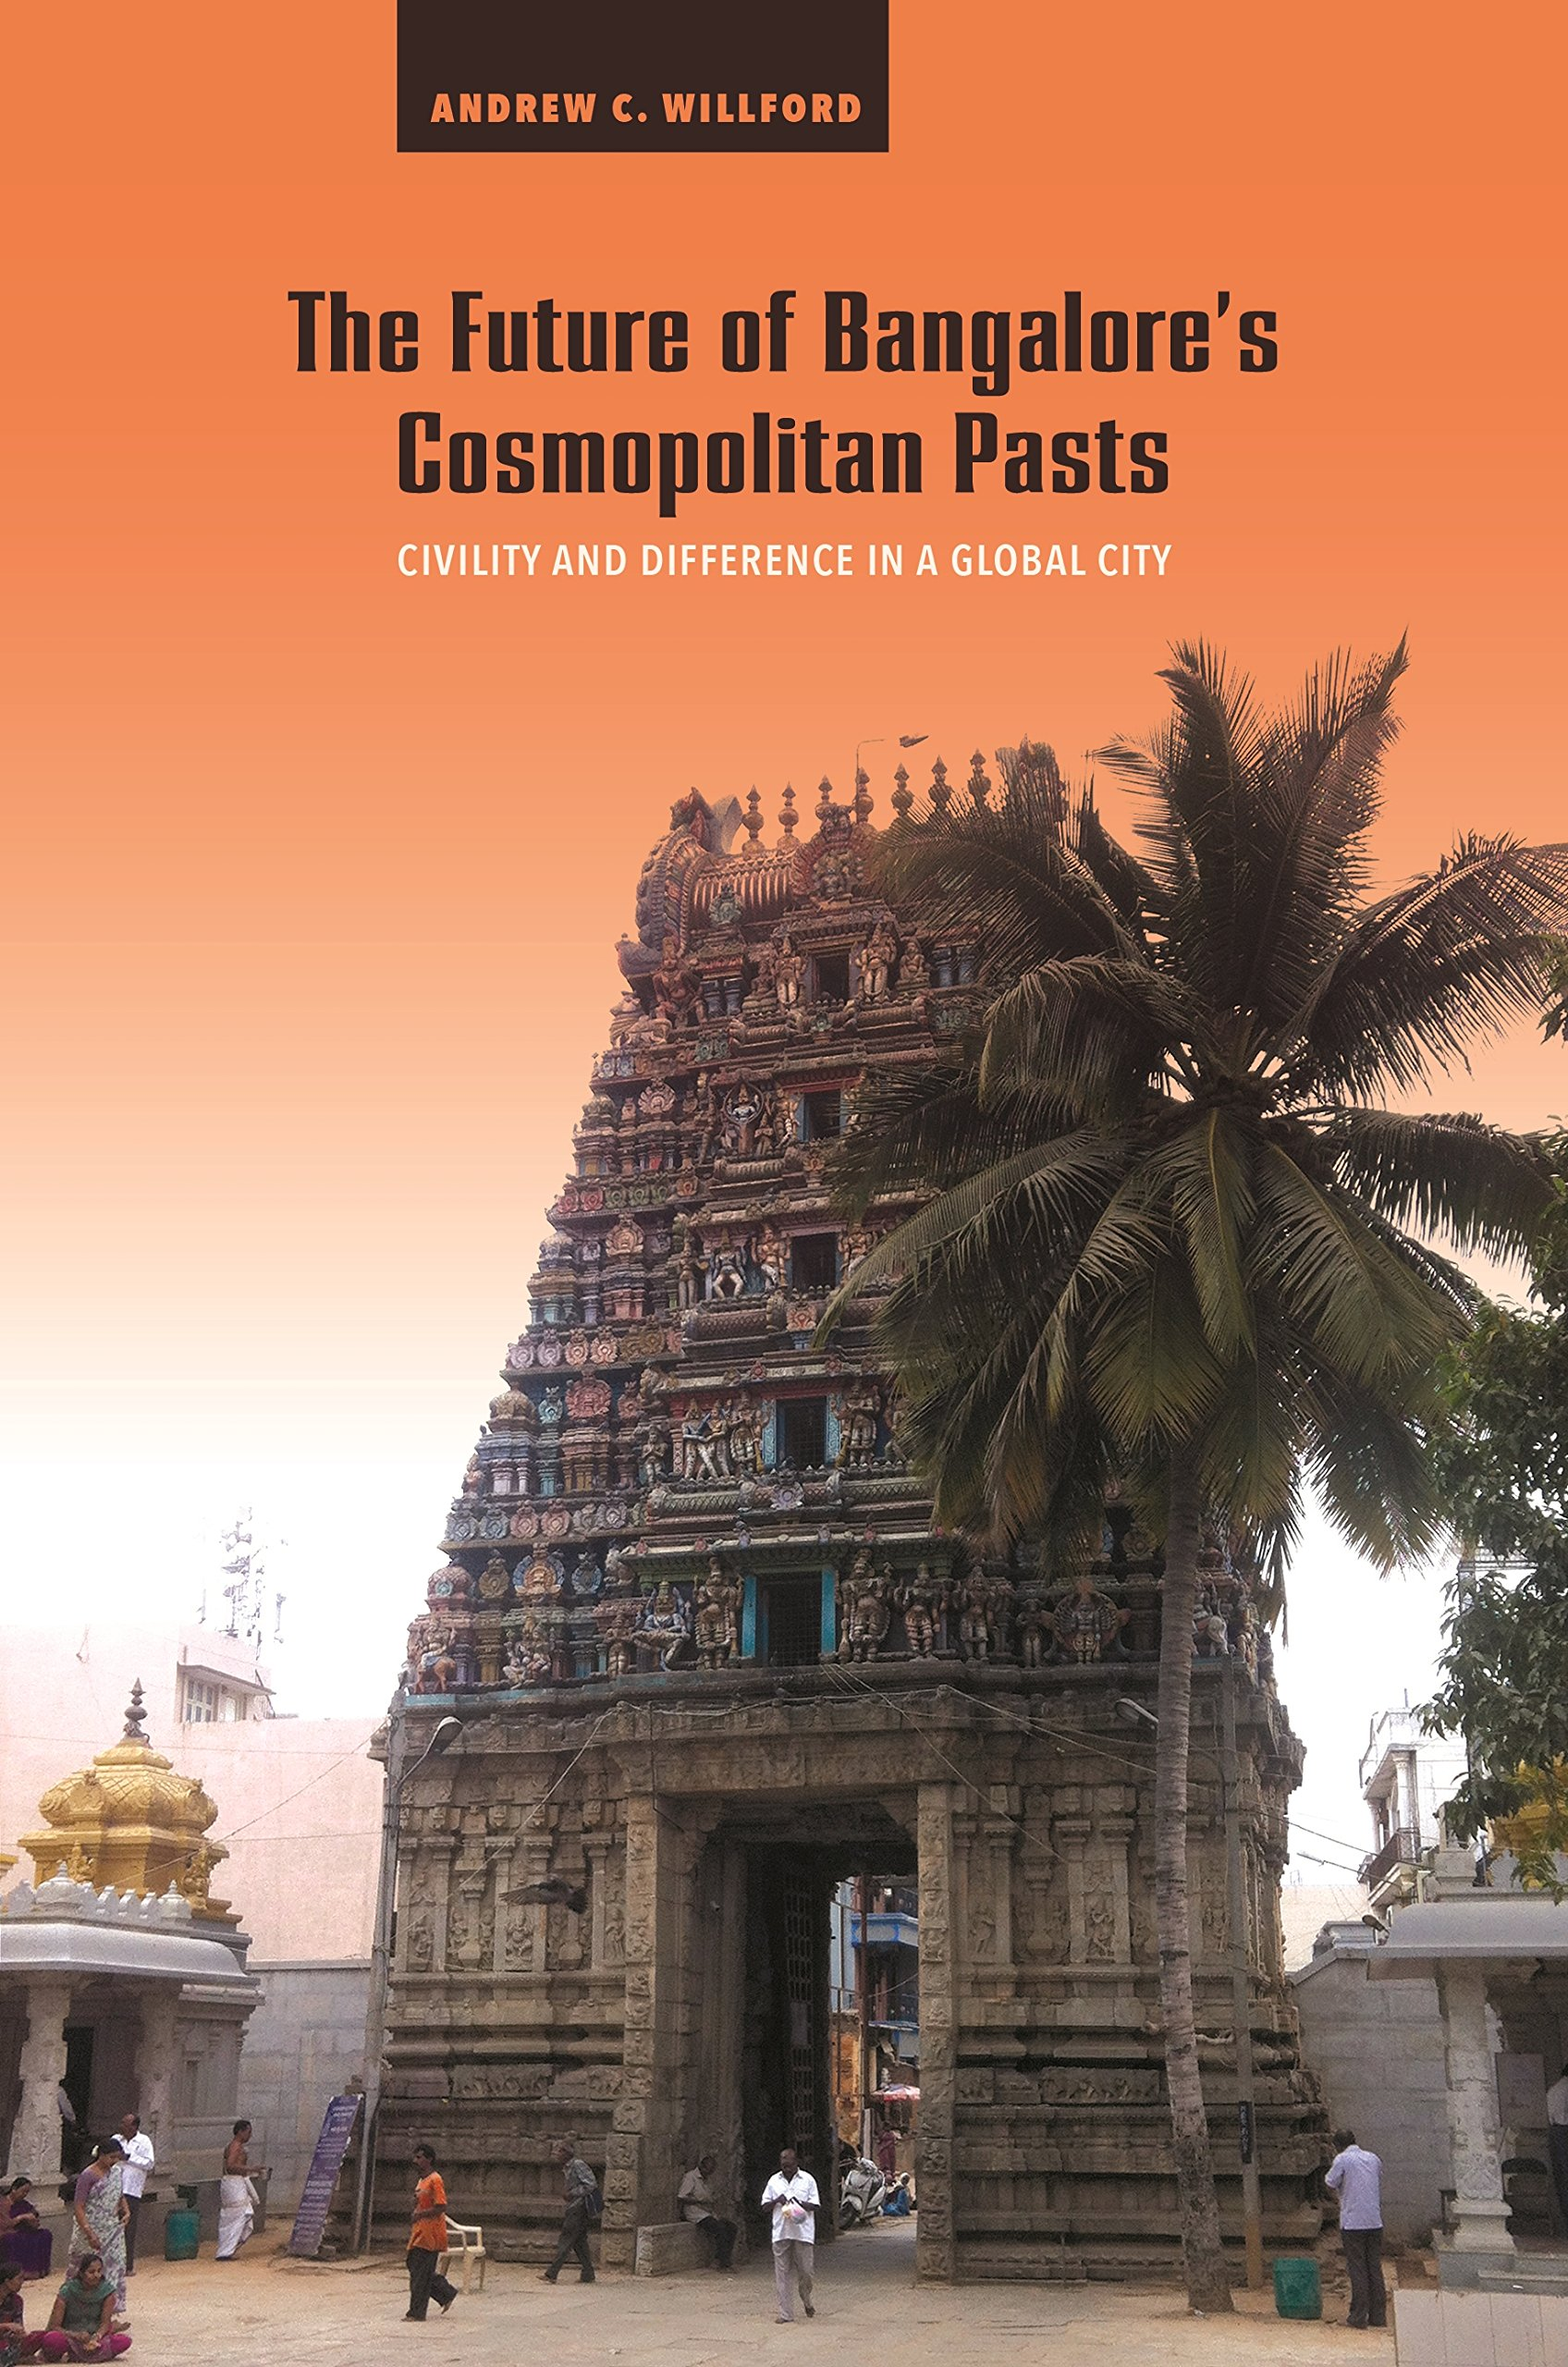 The Future of Bangalore's Cosmopolitan Pasts: Civility and Difference in a Global City ebook